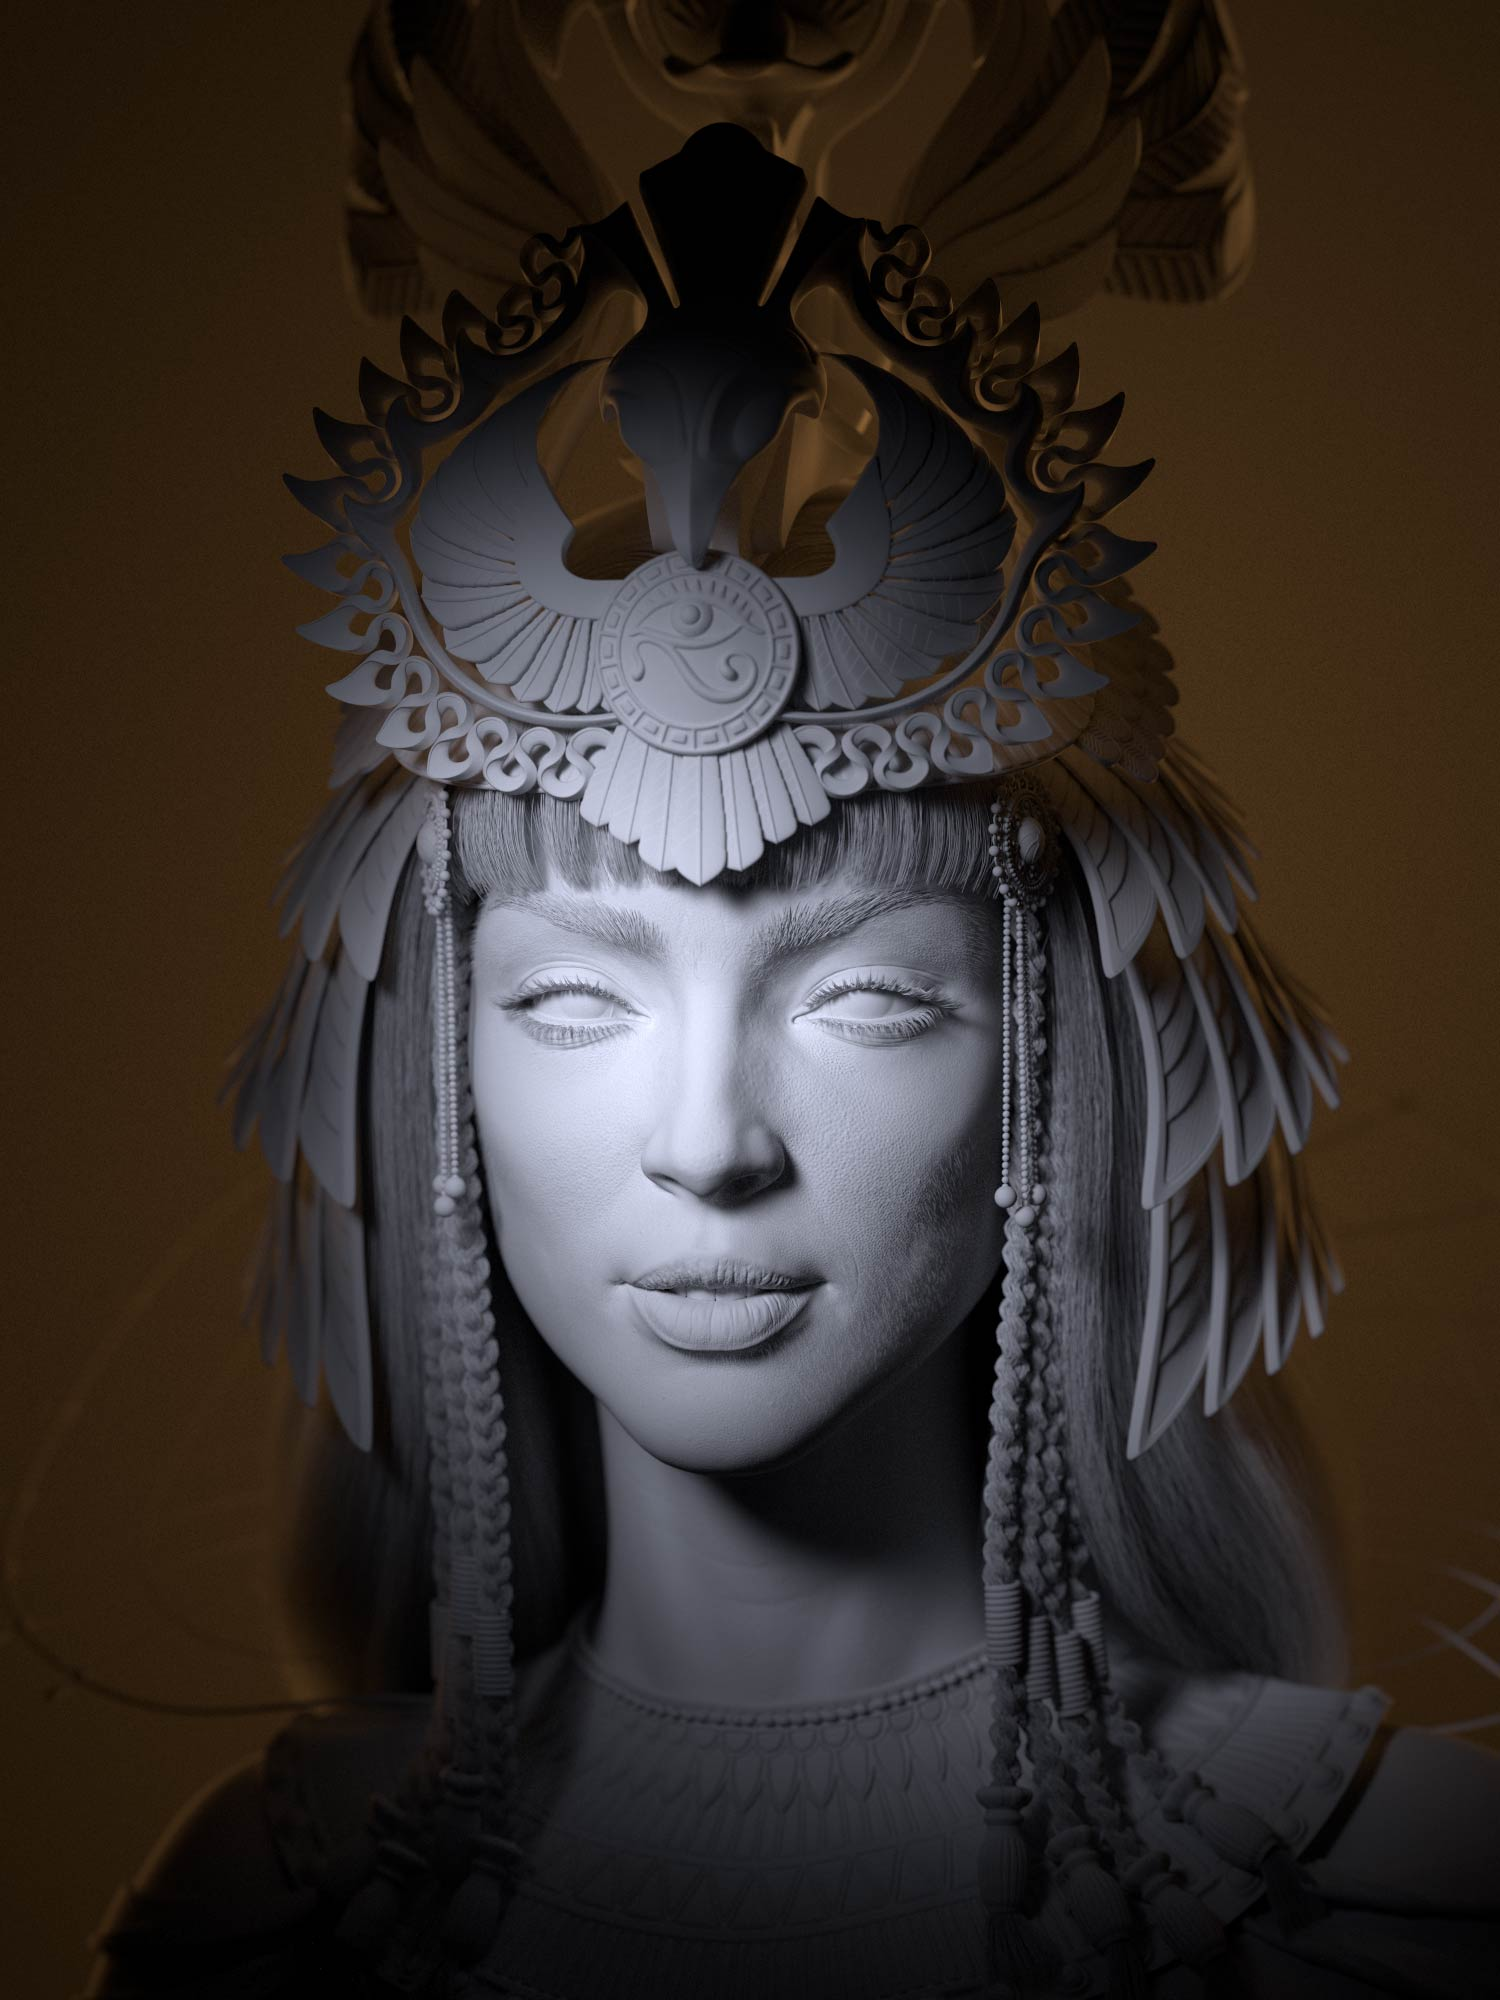 cleopatra_3d_lighting_wireframe_digital_csulpting Cleopatra CG Character